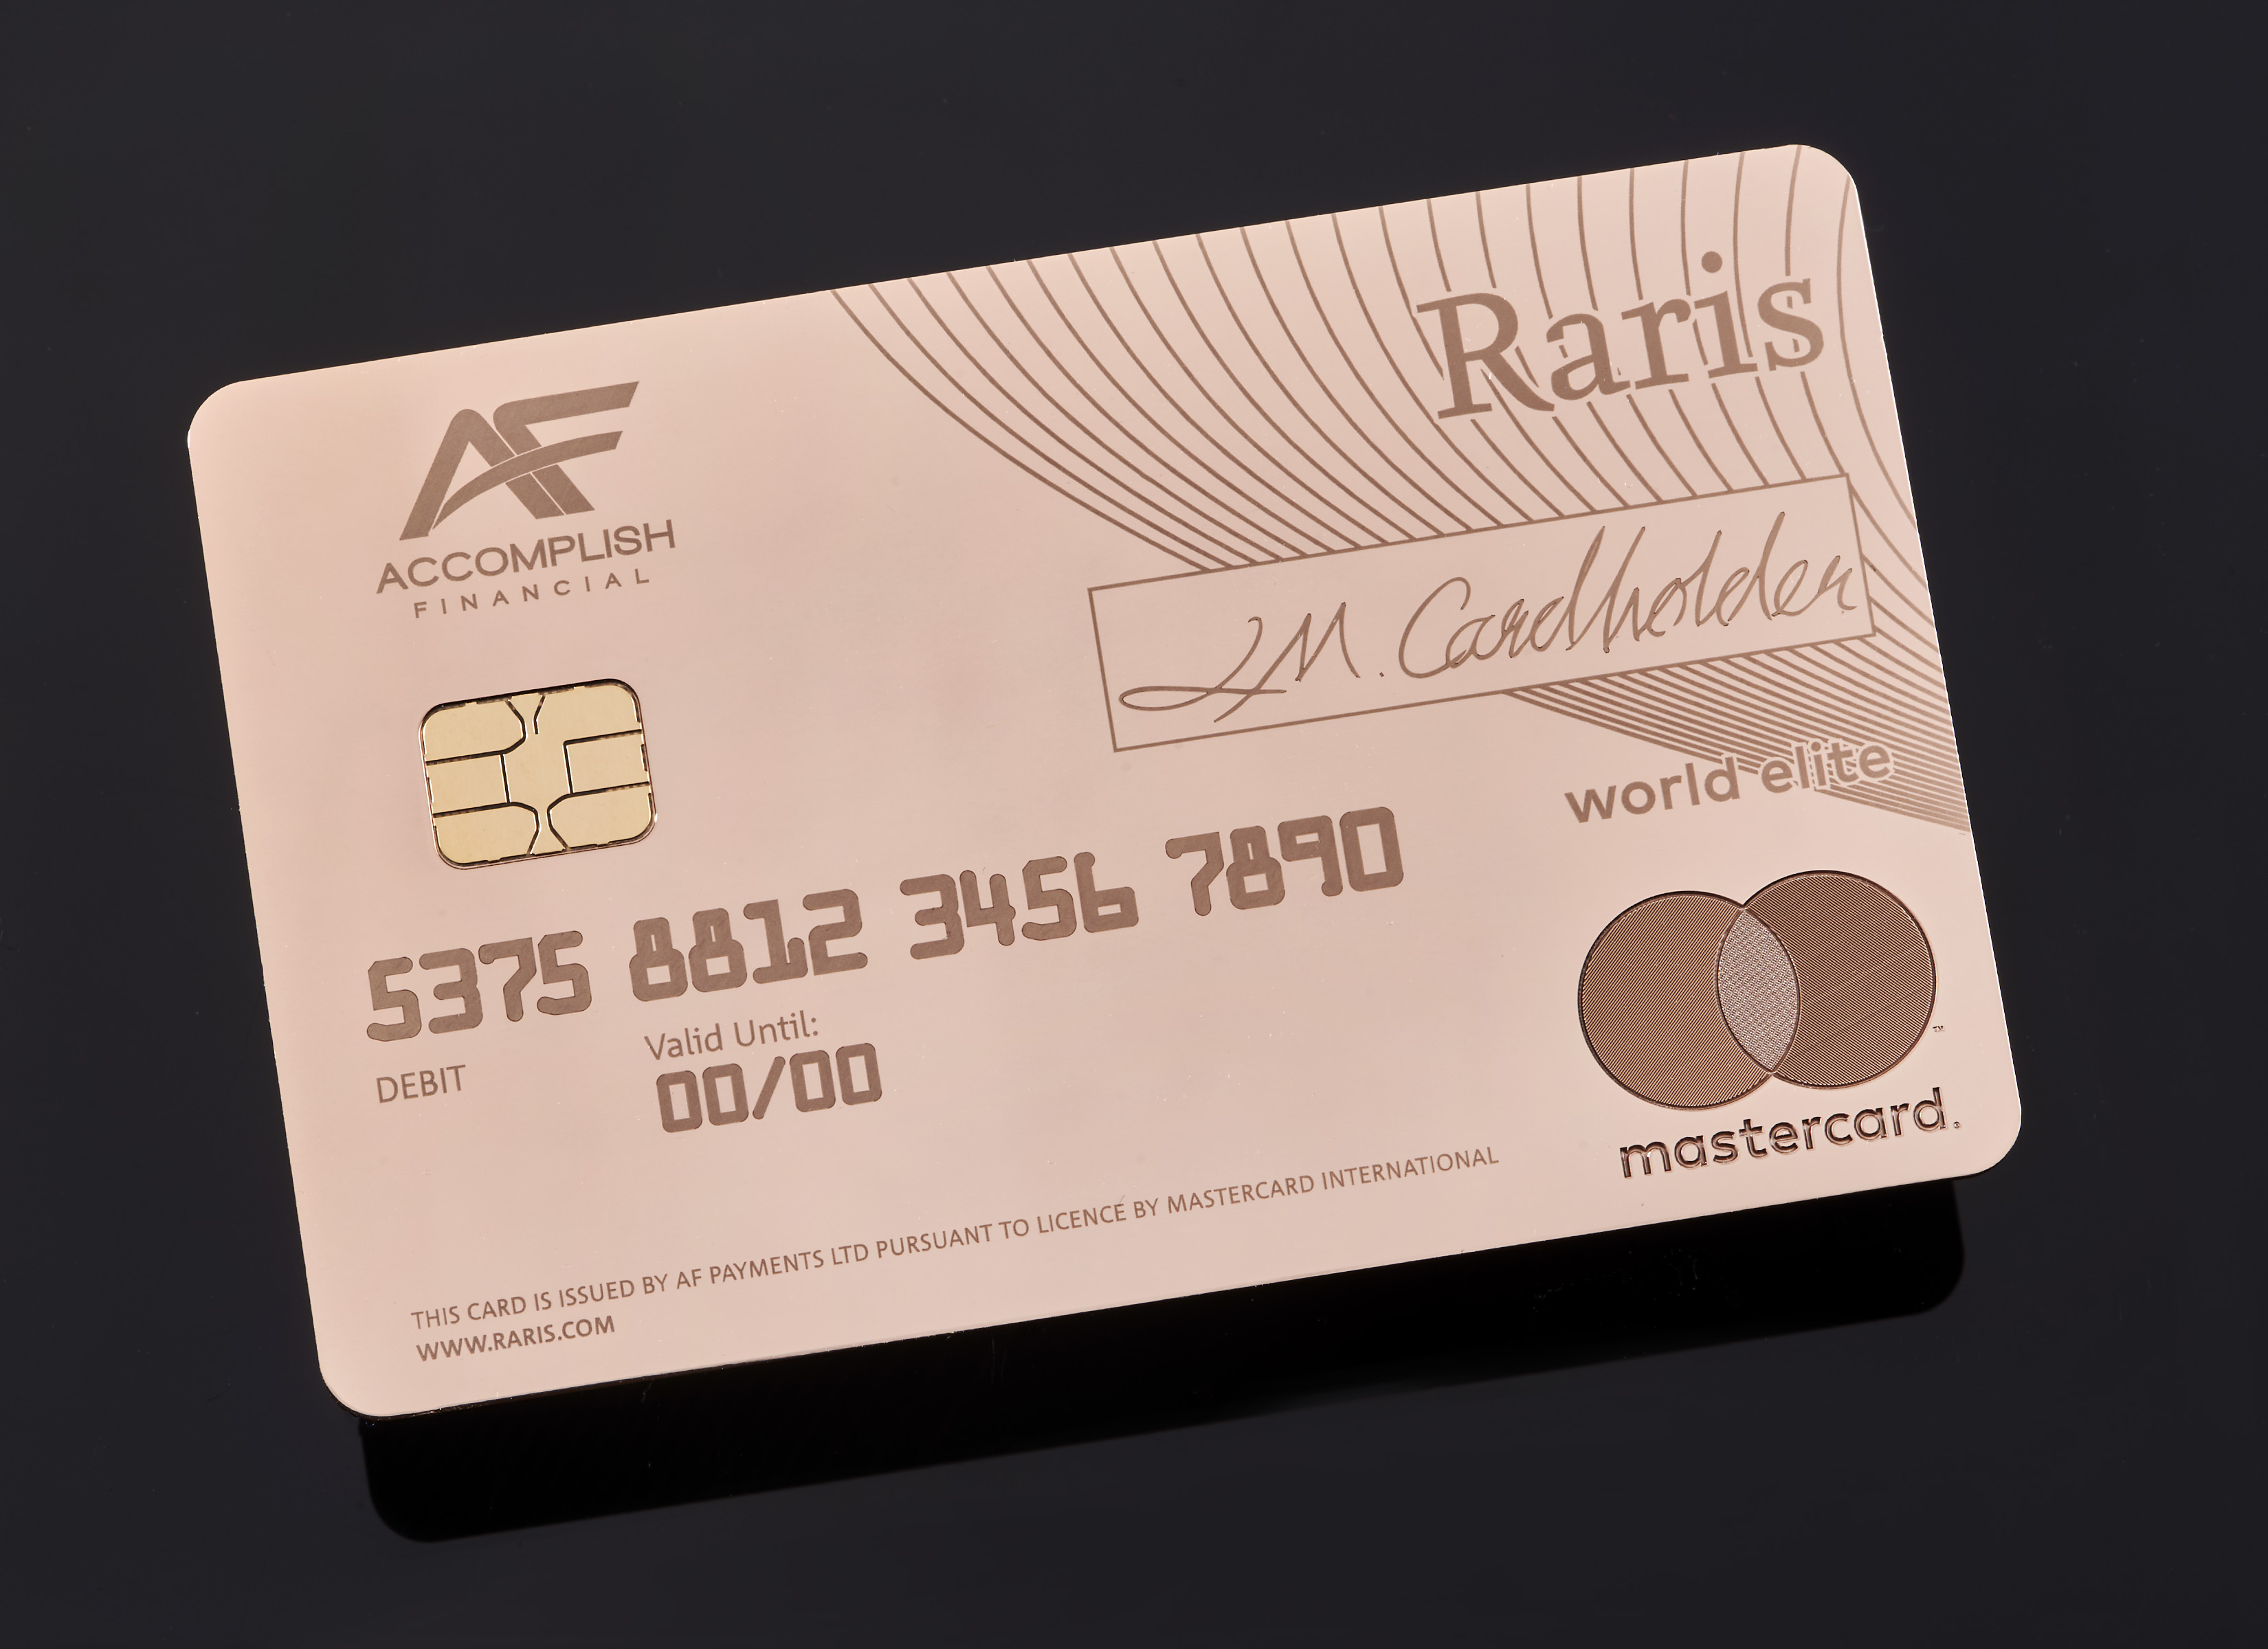 Raris gold card